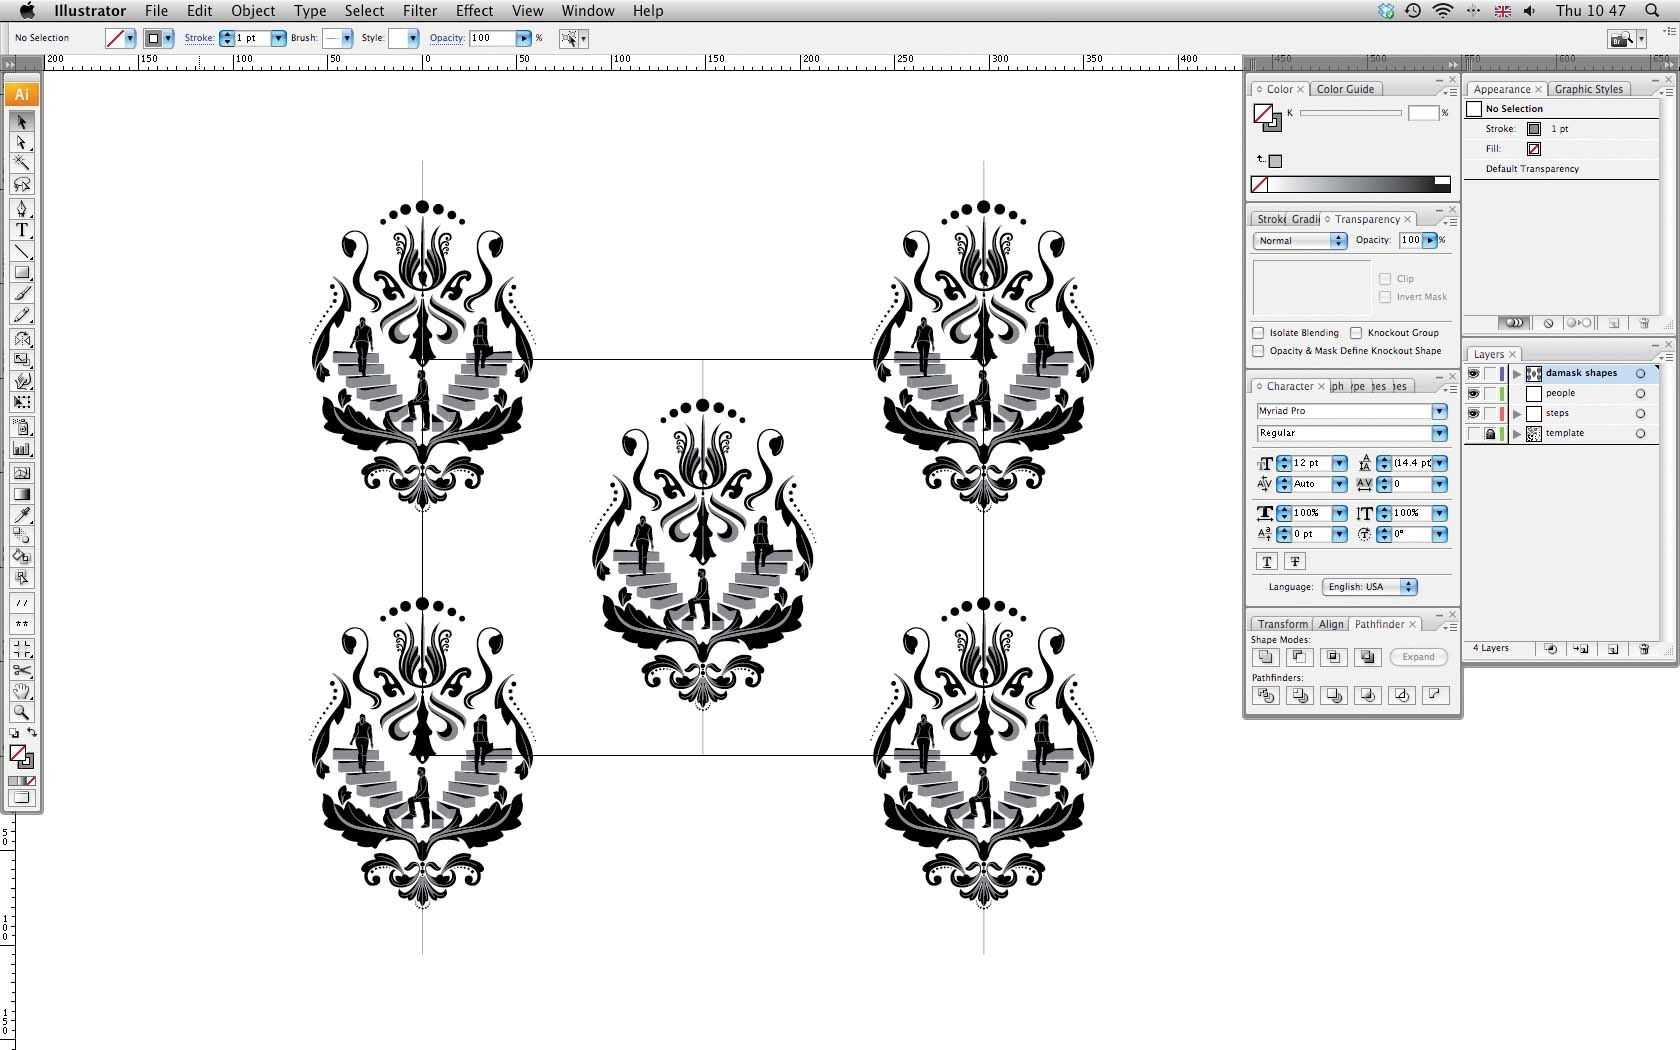 Adobe Illustrator & Photoshop tutorial: Design repeating